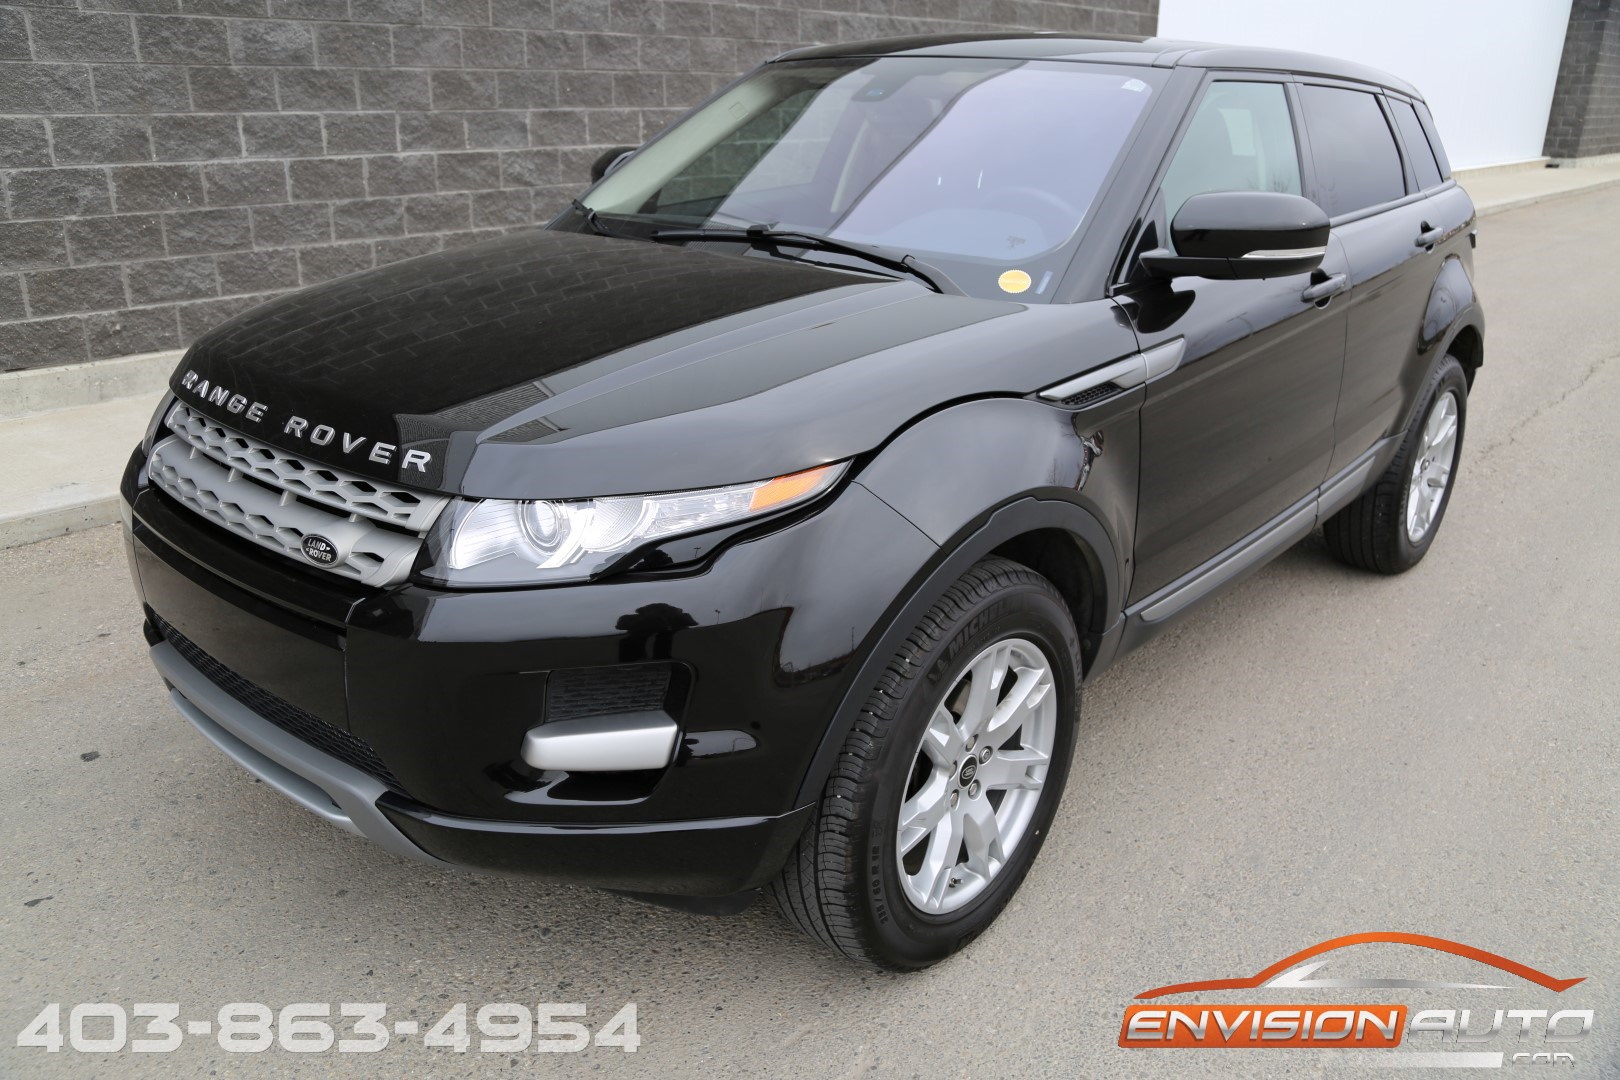 2013 land rover range rover evoque pure envision auto. Black Bedroom Furniture Sets. Home Design Ideas